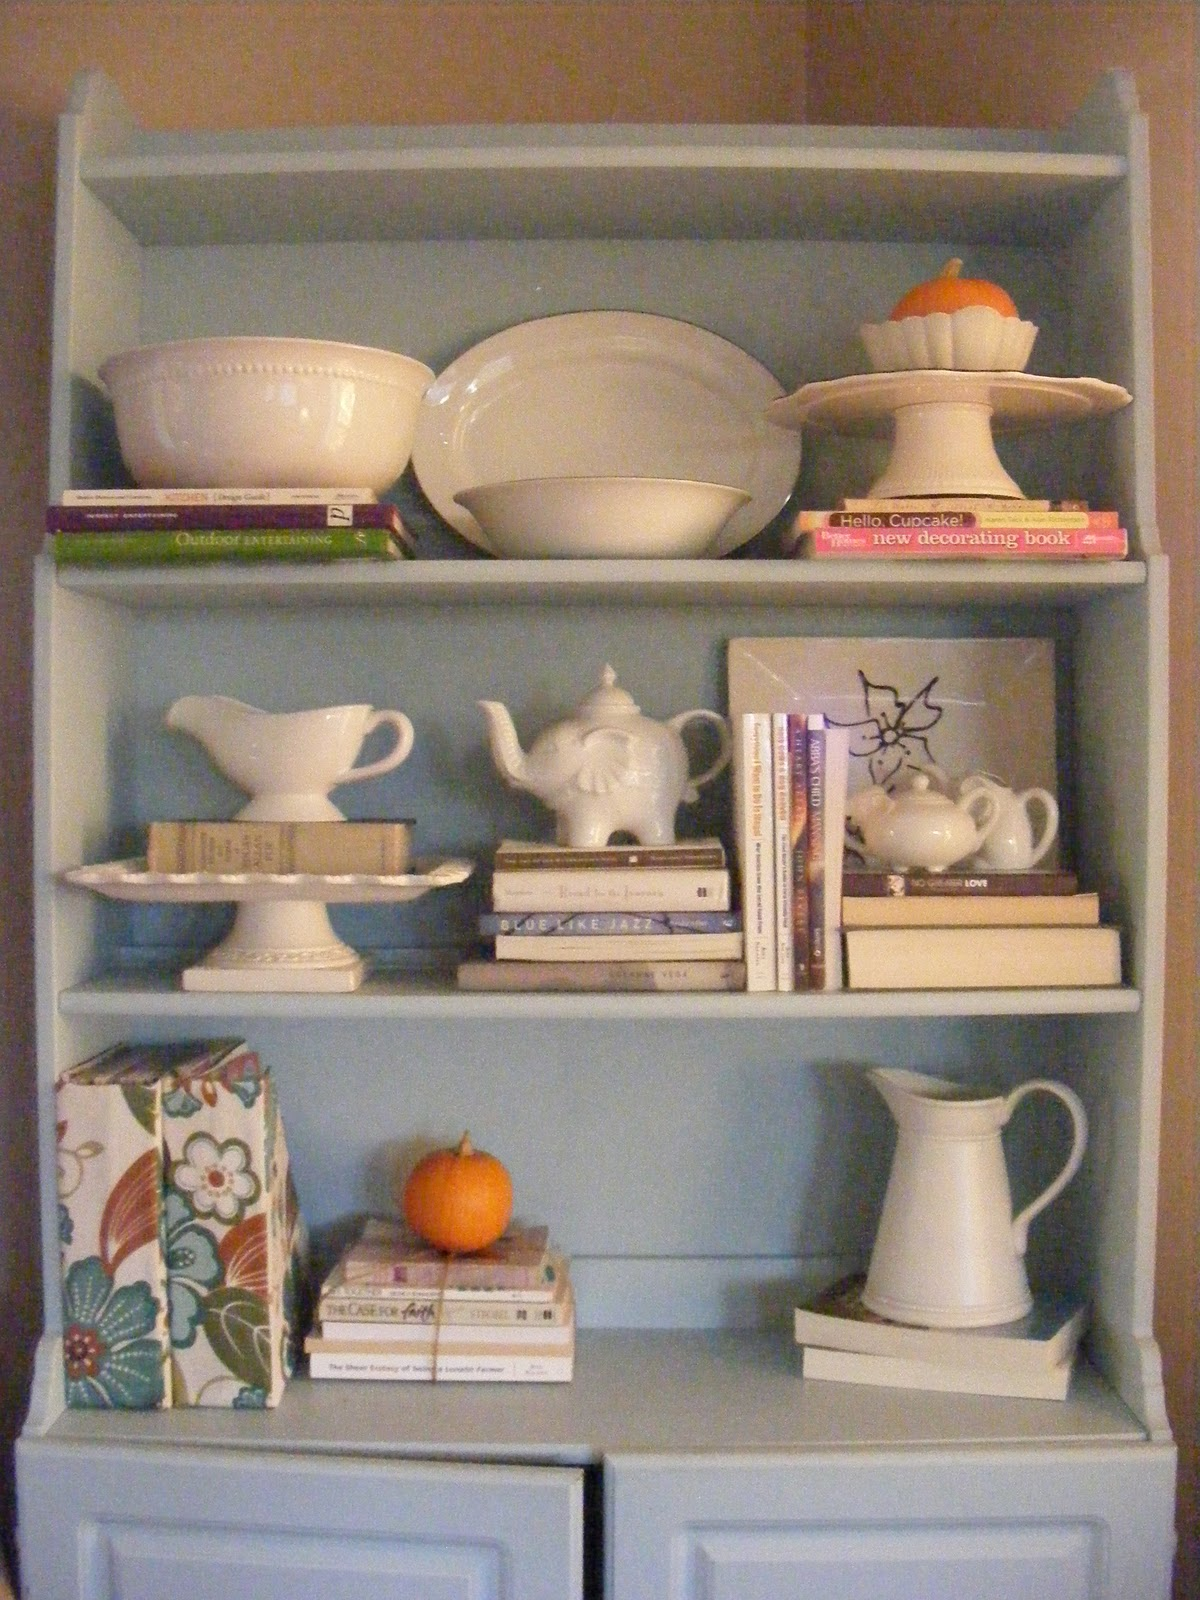 The Complete Guide to Imperfect Homemaking: September 2011